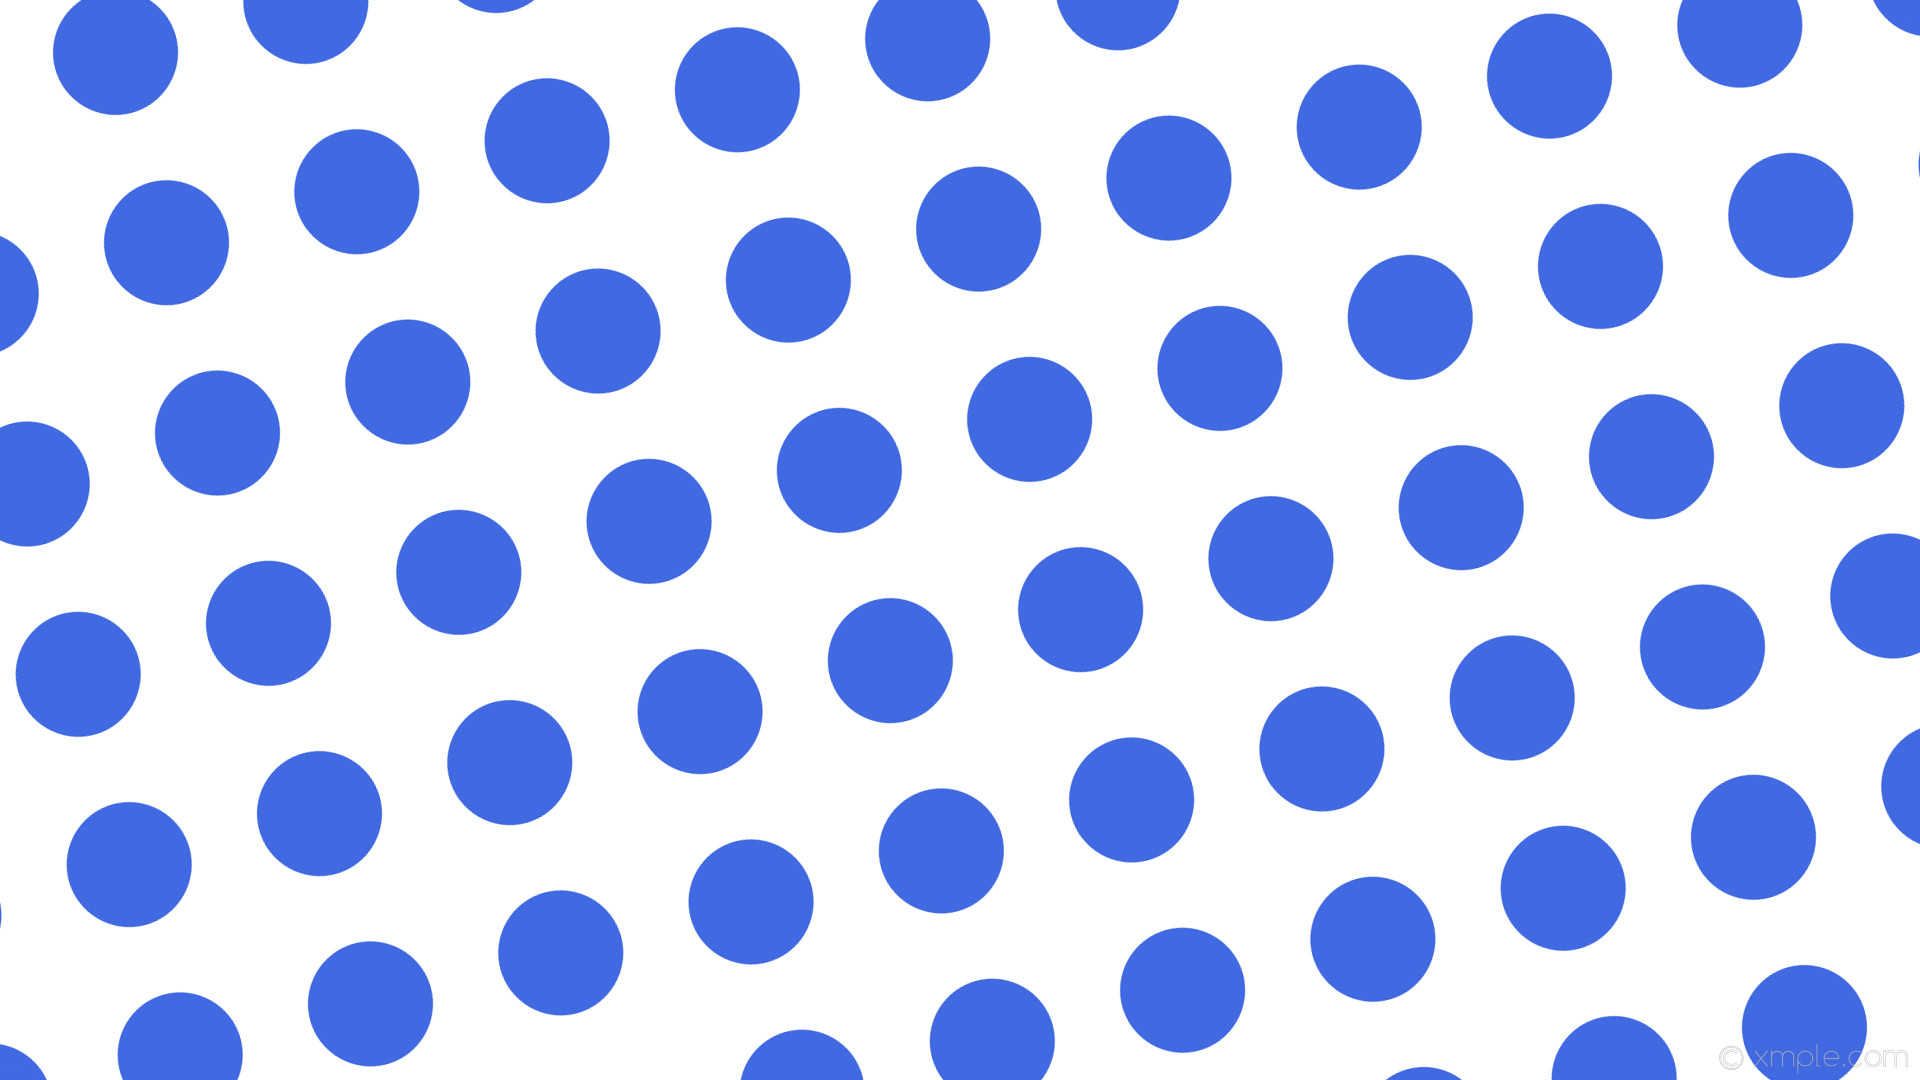 wallpaper white polka dots blue spots royal blue #ffffff #4169e1 105° 125px  197px